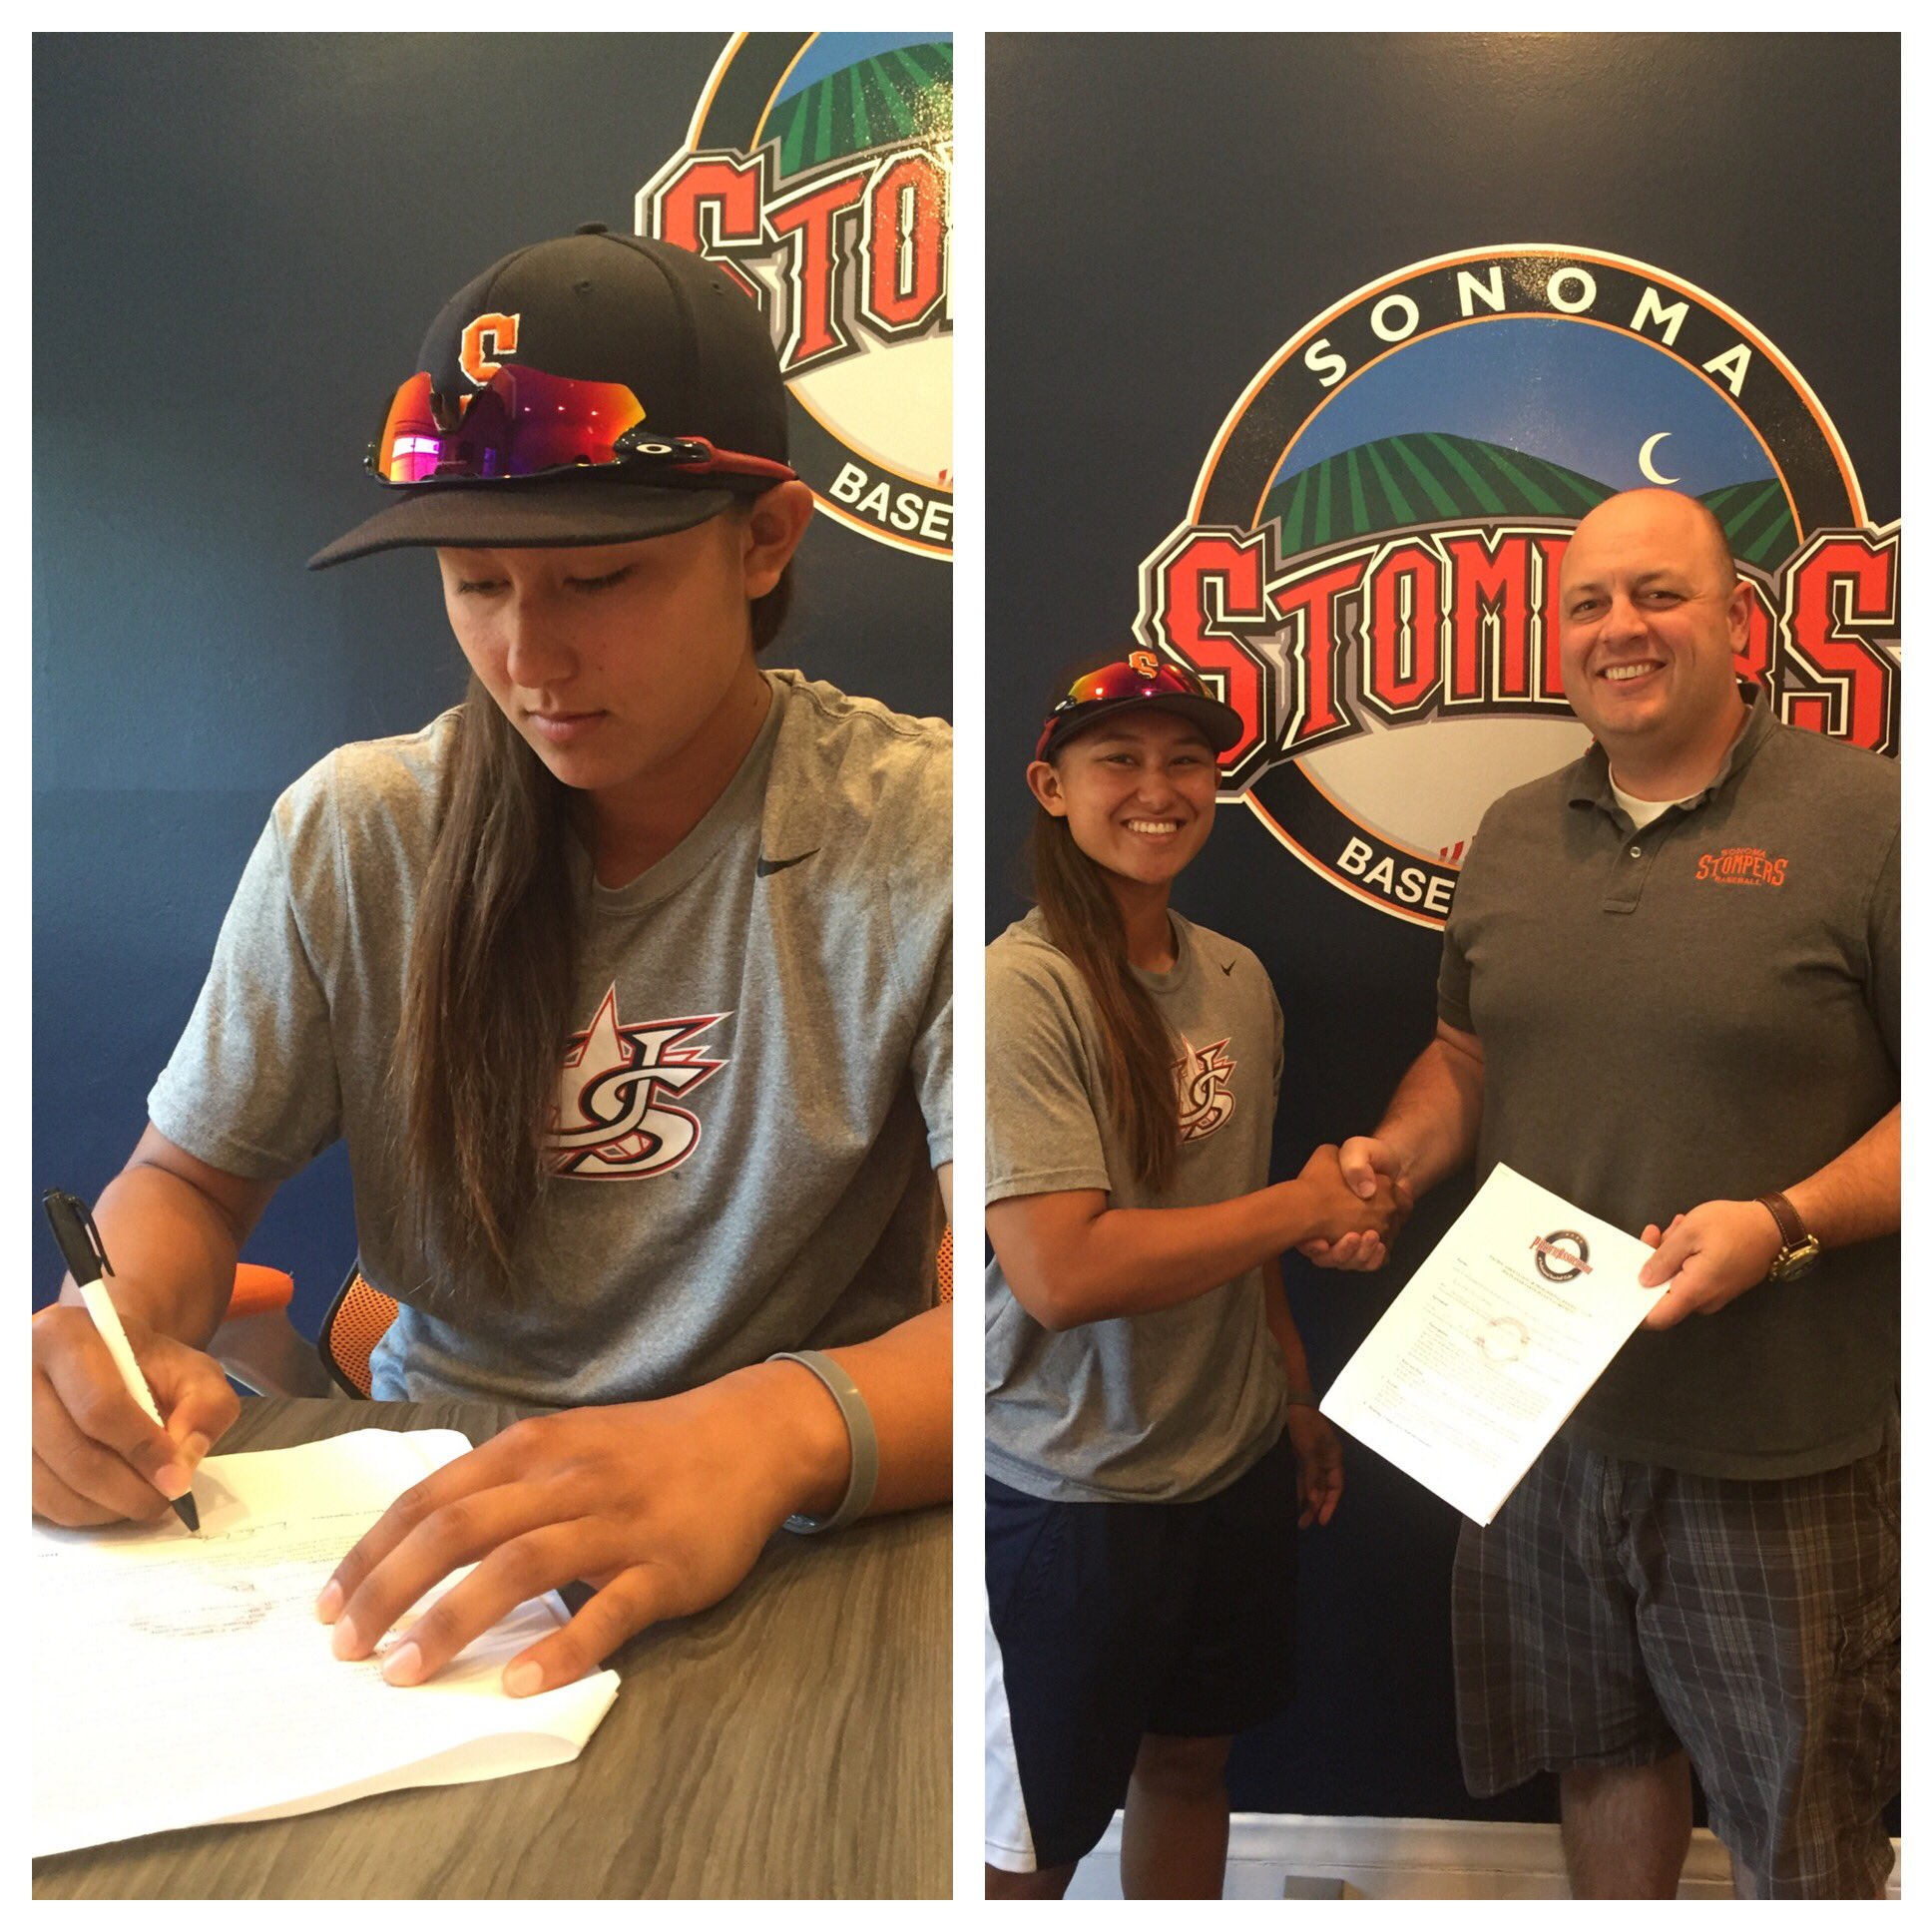 Kelsie Whitmore signs her professional contract with the Sonoma Stompers on Wednesday. She and Stacy Piagno will make their debuts with the Stompers on Friday.   Tim Livingston/Sonoma Stompers